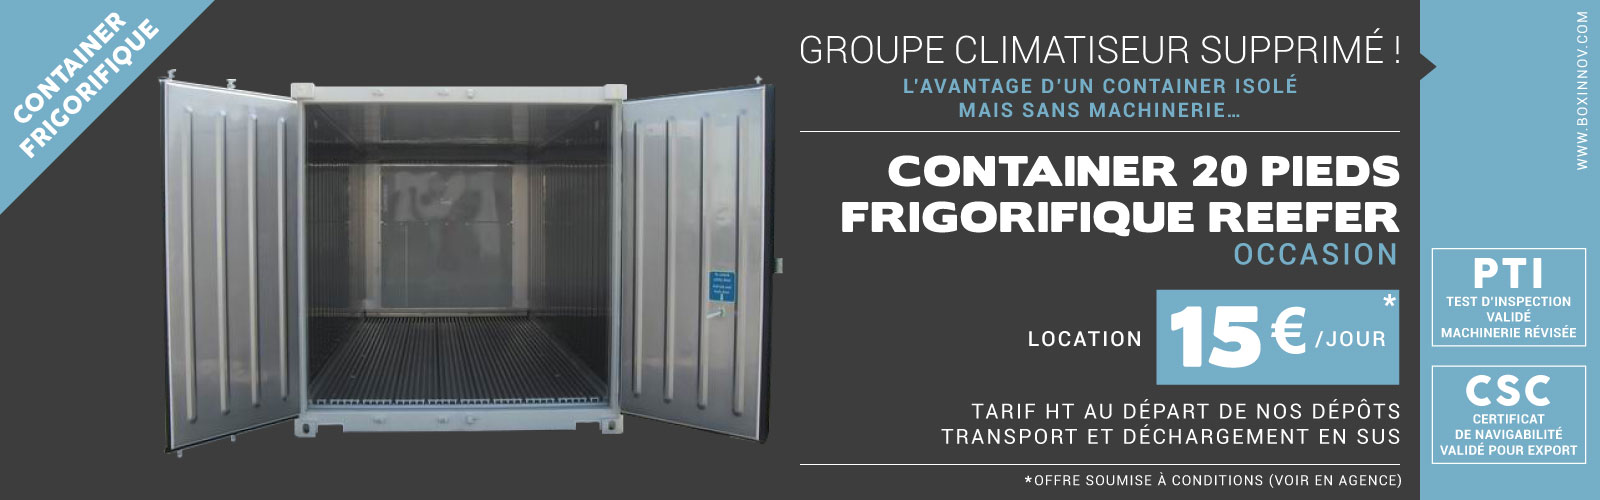 location container frigorifique container-20-reefer-location-boxinnov